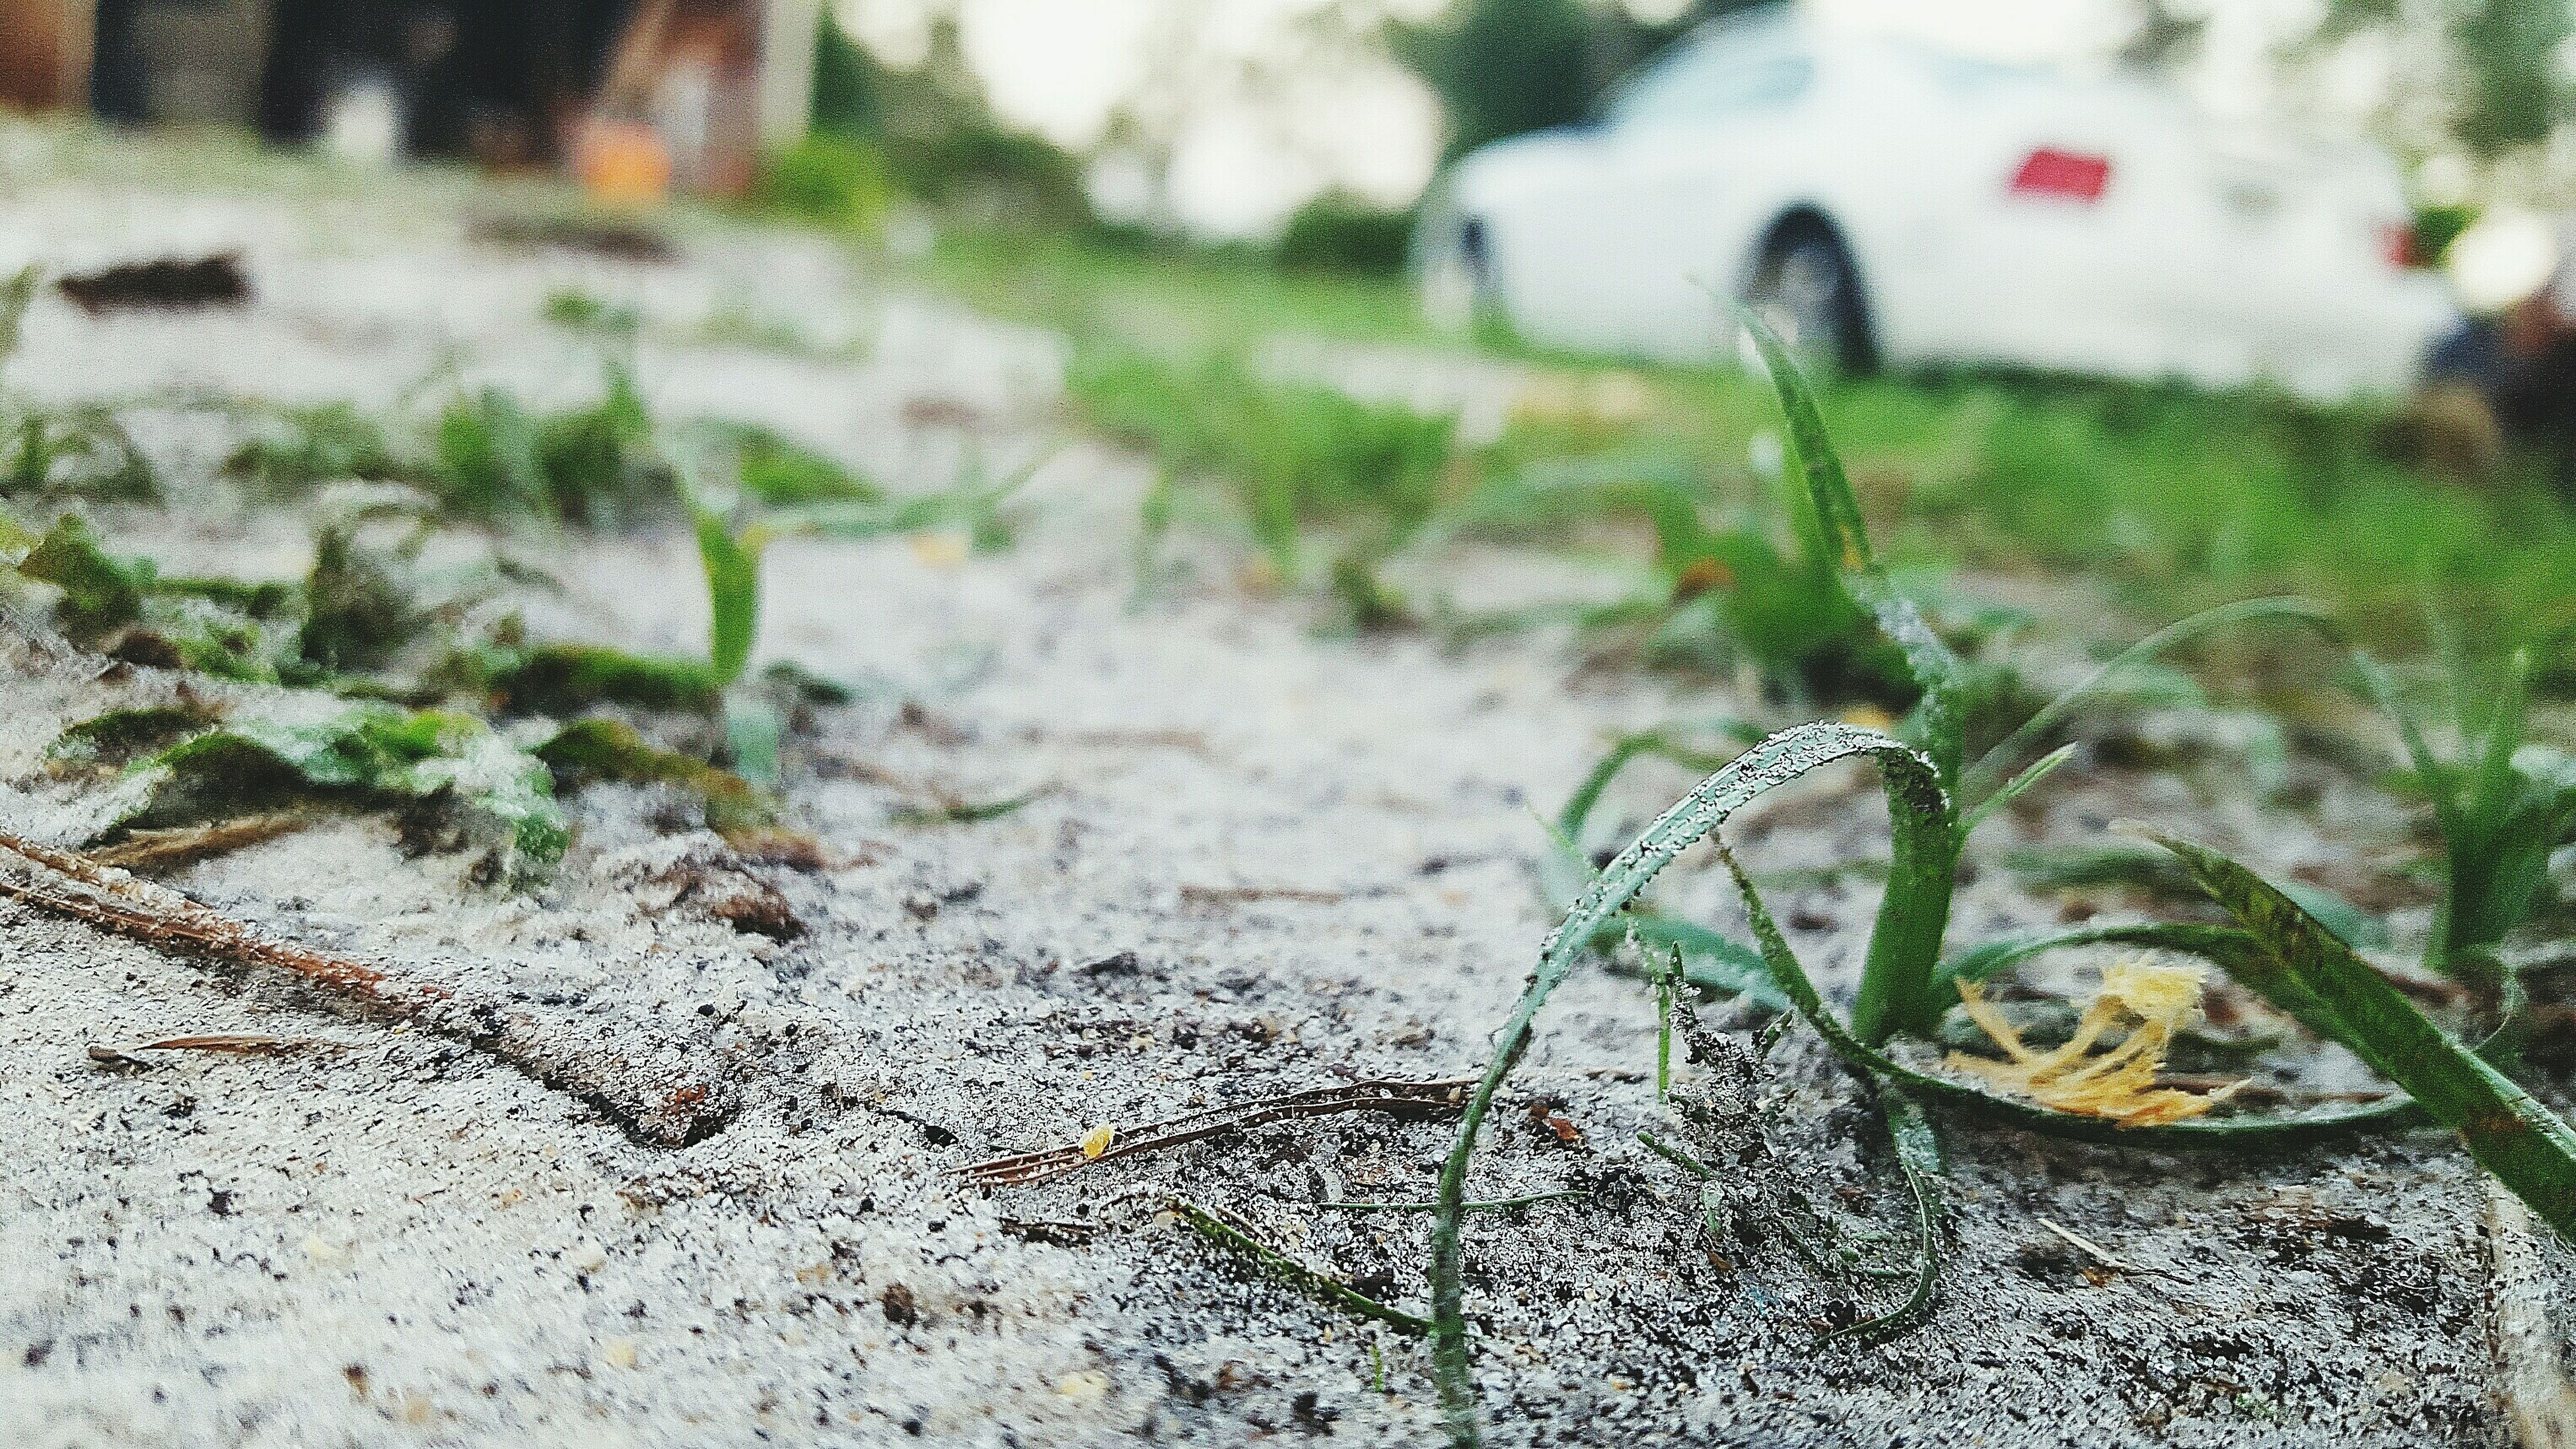 plant, growth, focus on foreground, selective focus, day, nature, outdoors, green color, no people, surface level